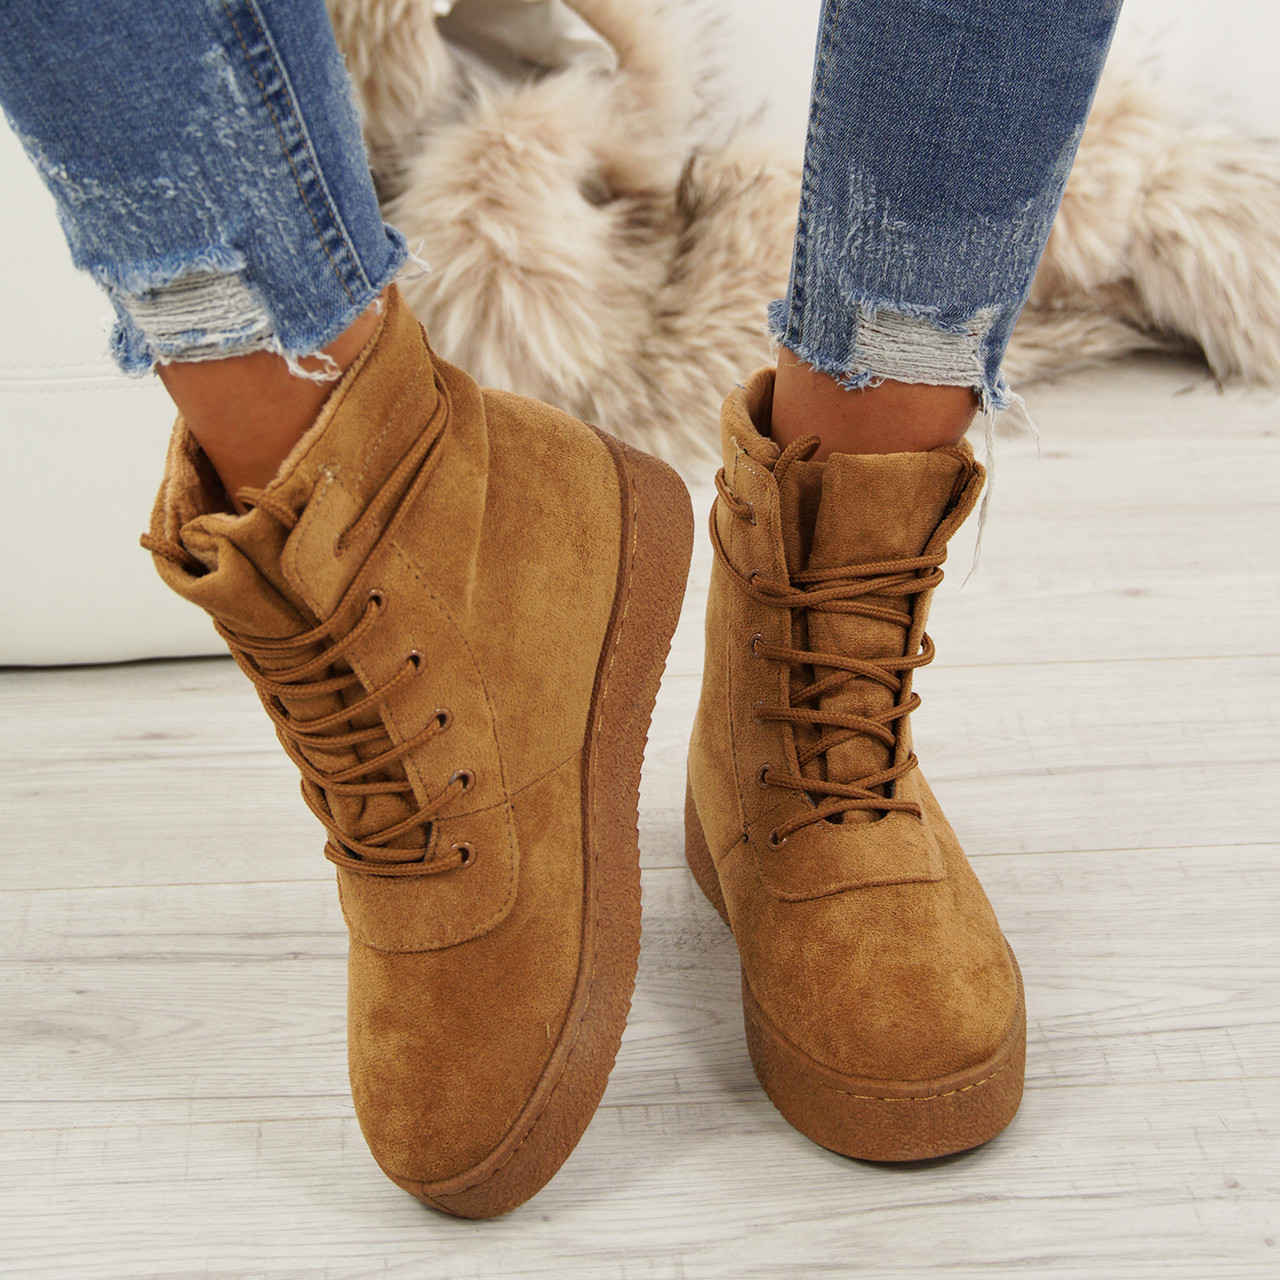 Ladies Lace Up Ankle Boots Womens Faux